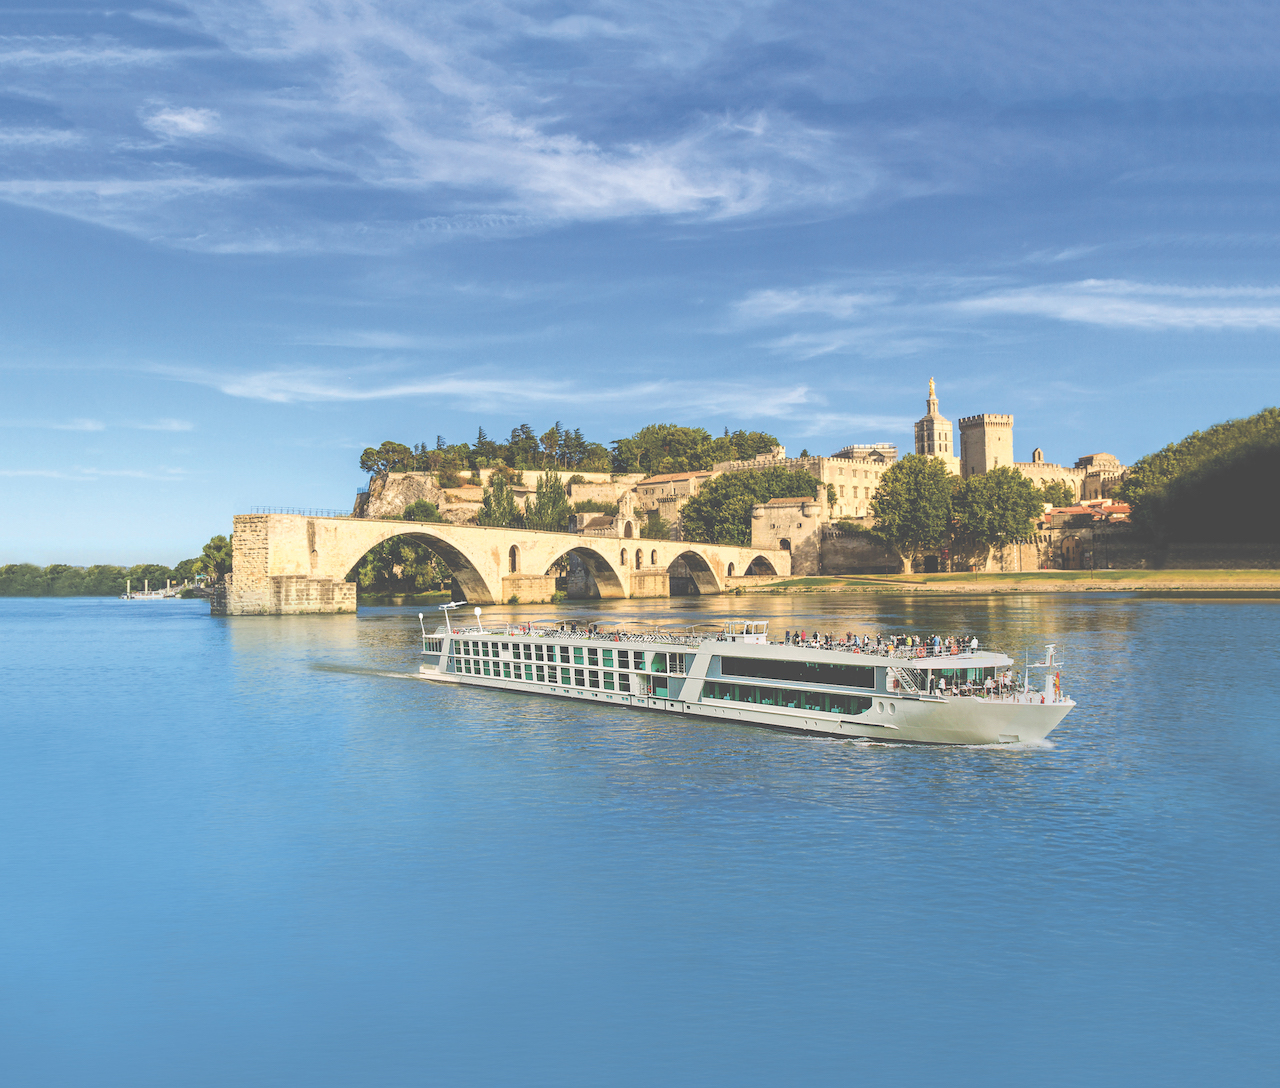 Emerald Cruises has launched a series of new Epic Voyages to help avid cruise travelers make up for time lost during the Covid-19 pandemic.